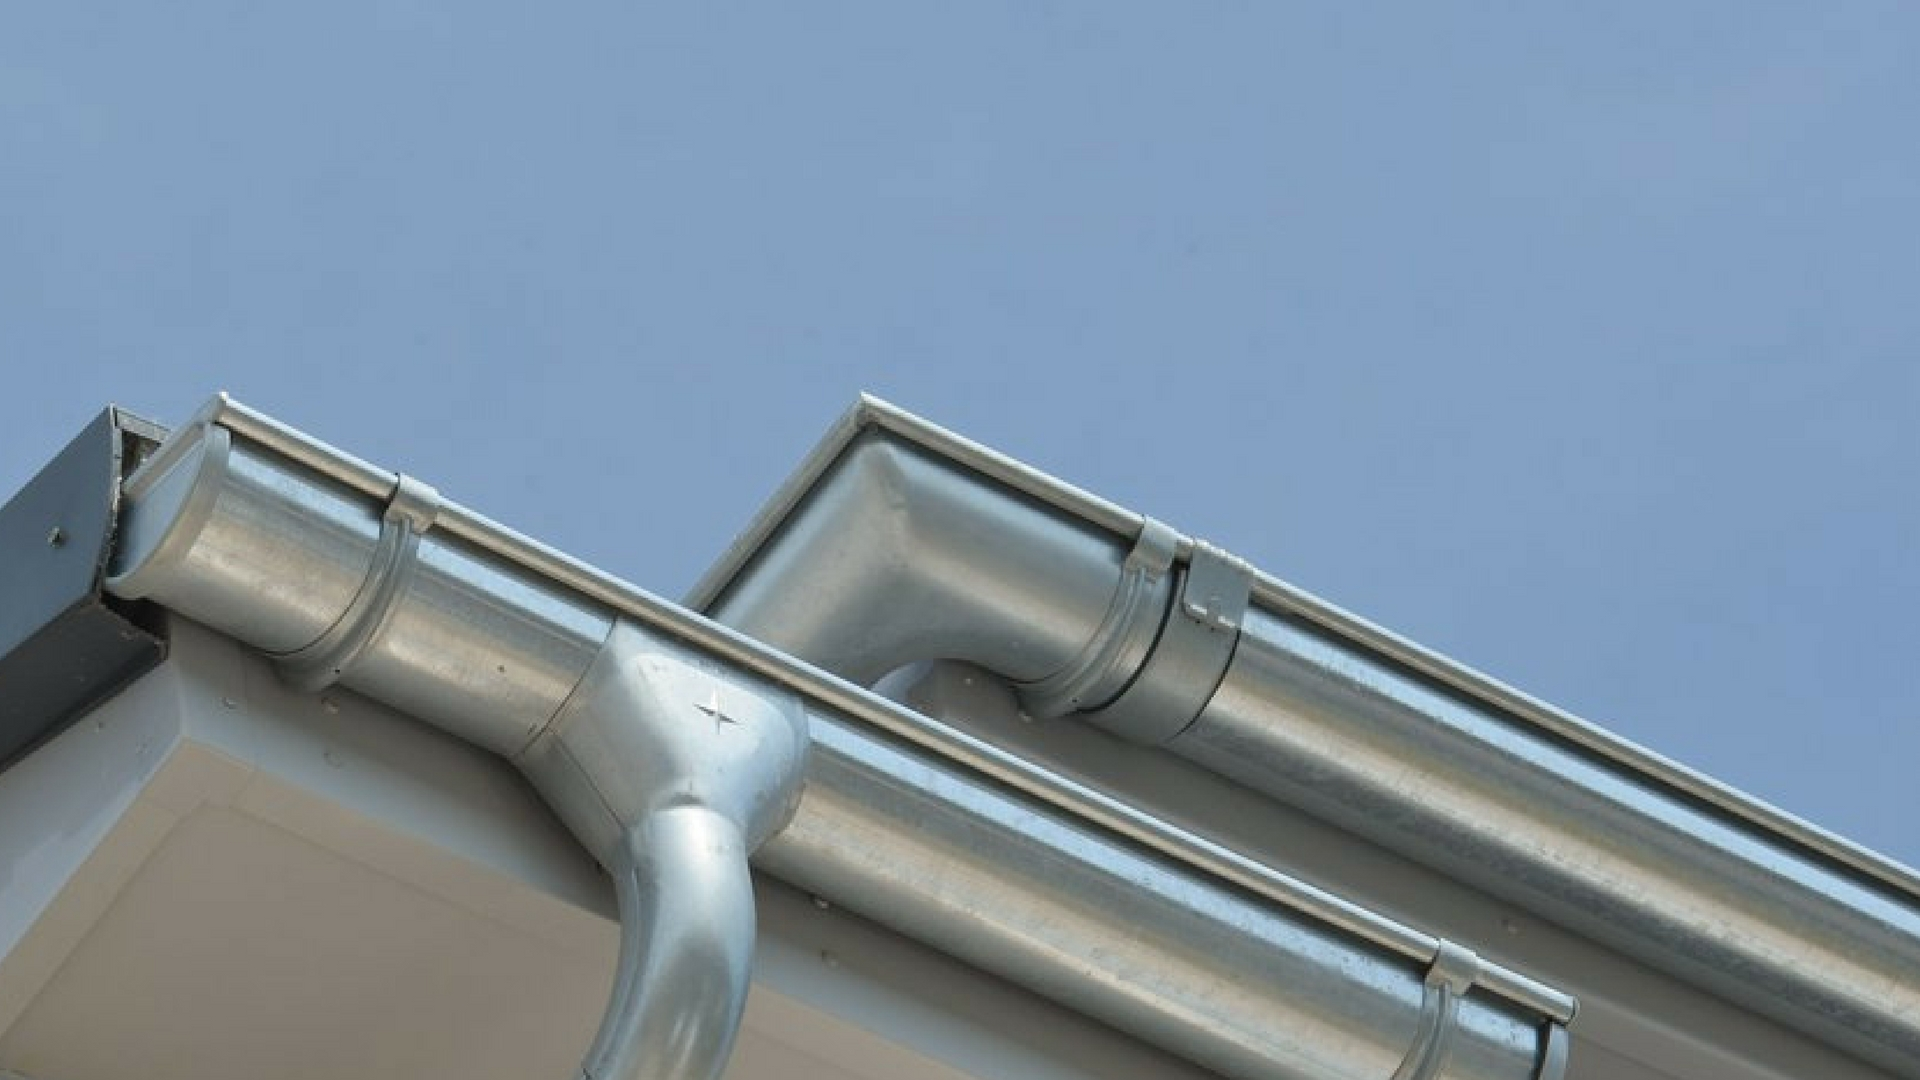 We offer galvanised steel gutters which are better at resisting dents. Our galvanised steel is more appealing even in hot conditions, very strong and reliable.